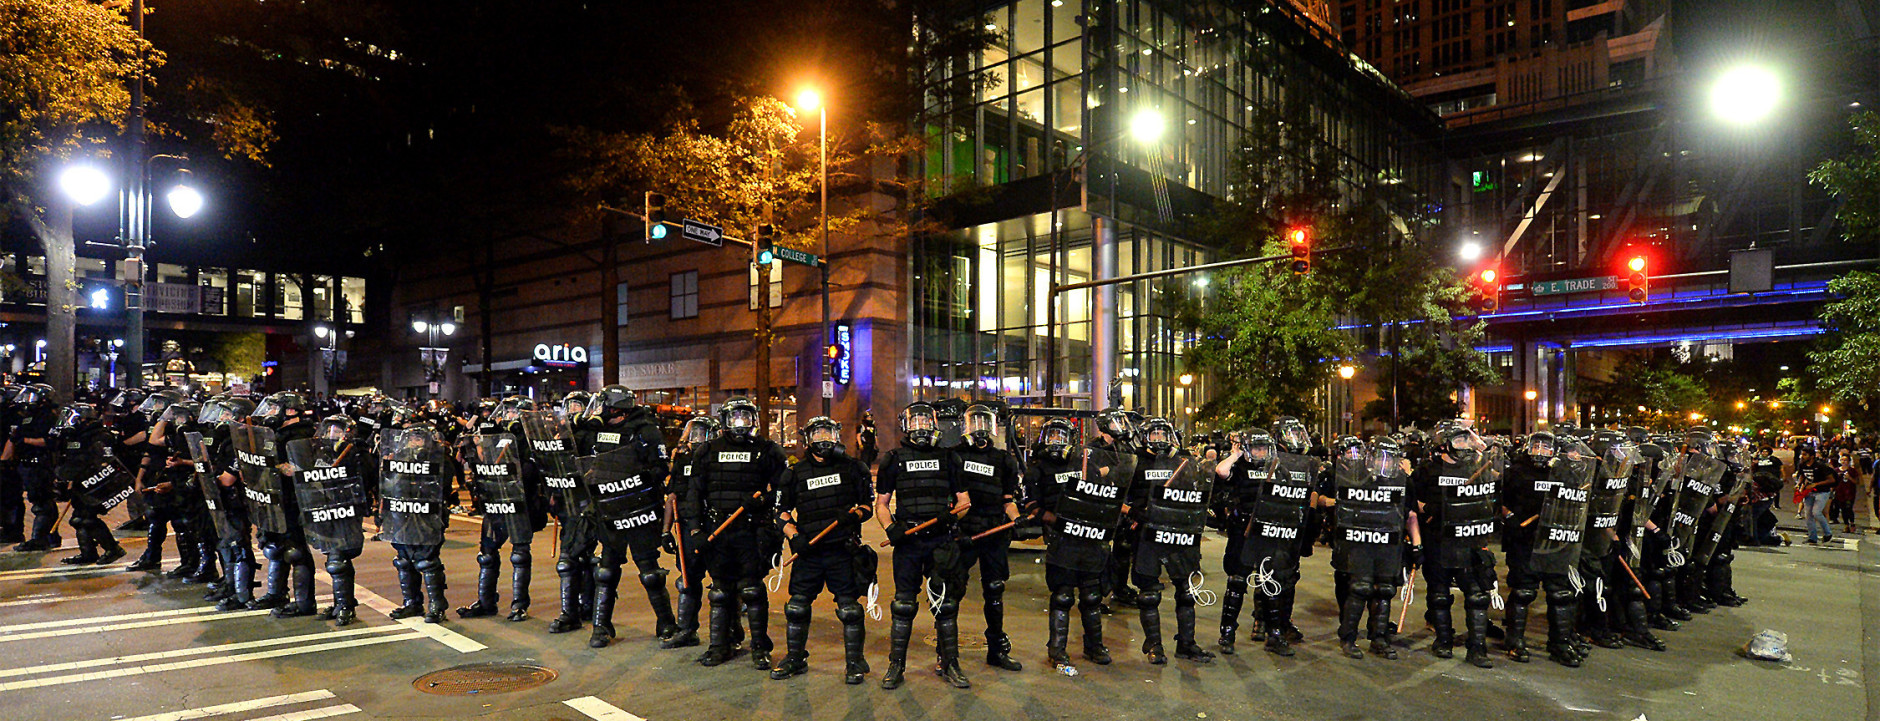 CMPD officers in riot gear block the intersection near the Epicentre in Charlotte, N.C. Wednesday, Sept. 21, 2016. Authorities in Charlotte tried to quell public anger Wednesday after a police officer shot a black man, but a dusk prayer vigil turned into a second night of violence, with police firing tear gas at angry protesters and a man being critically wounded by gunfire. North Carolina's governor declared a state of emergency in the city. (Jeff Siner/The Charlotte Observer via AP)